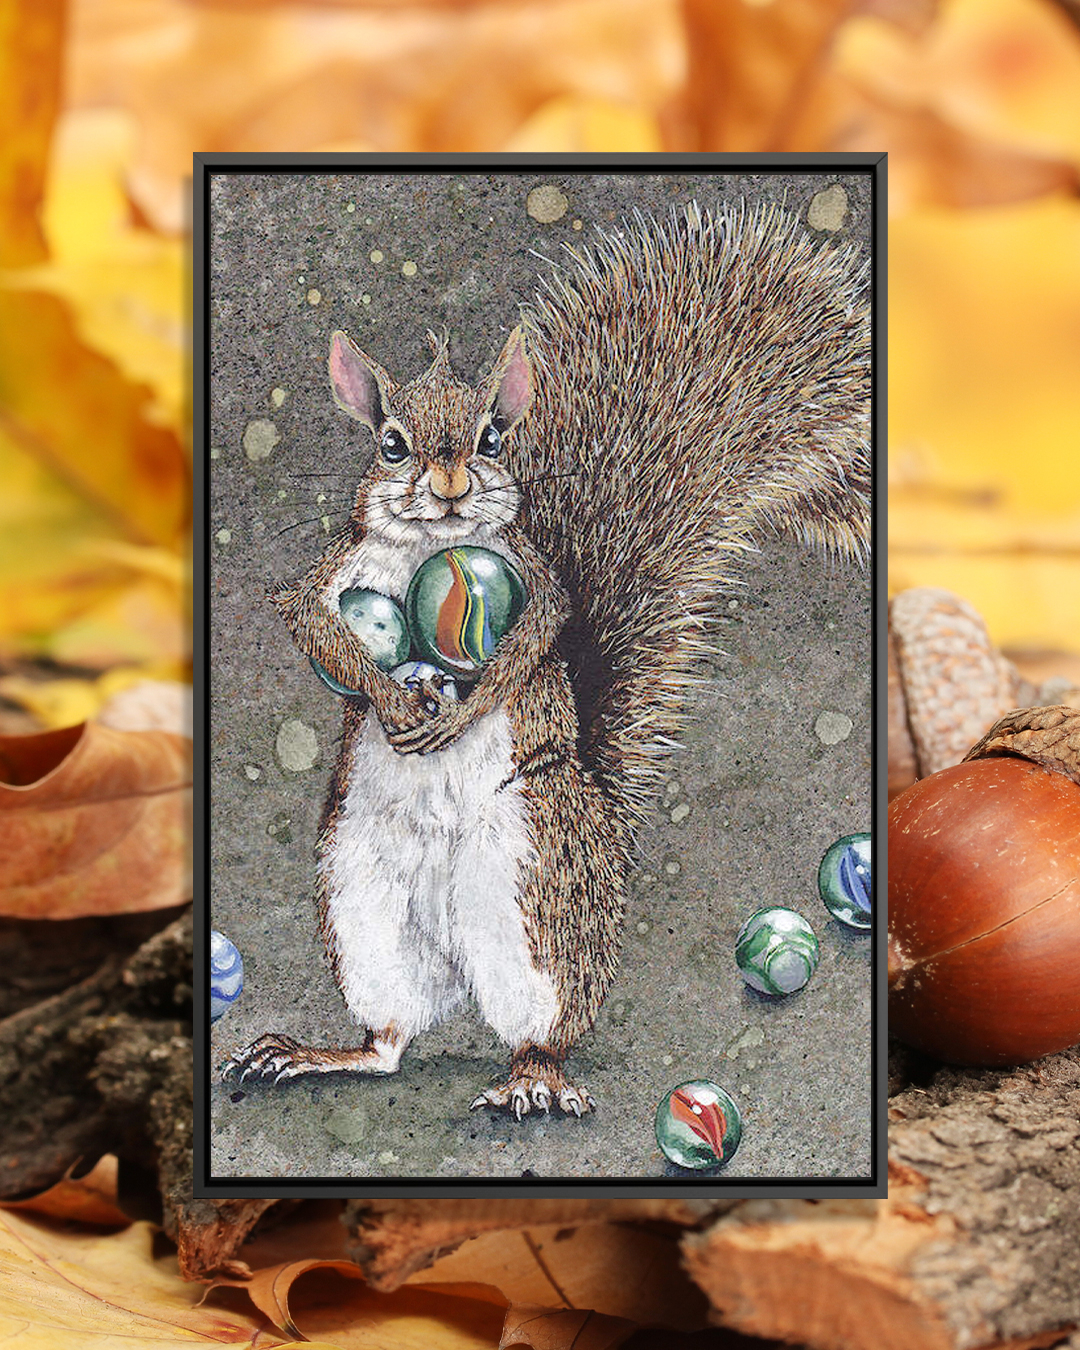 """Totally Marbles"" by Maggie Vandewalle shows a smiling squirrel holding marbles."